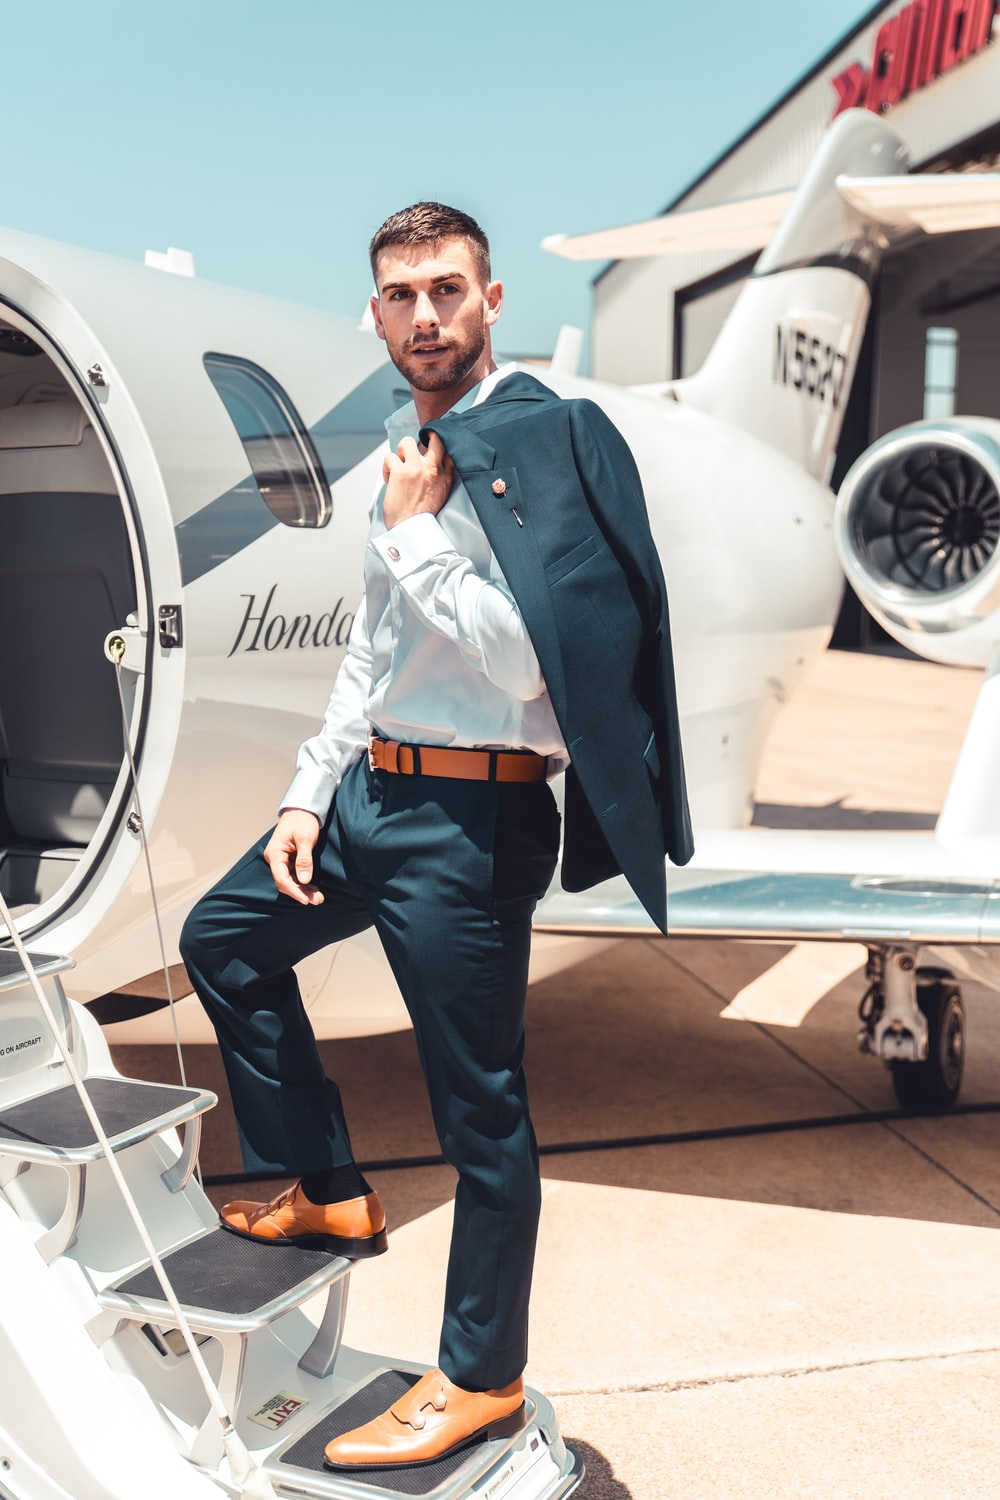 man standing on plane stairs